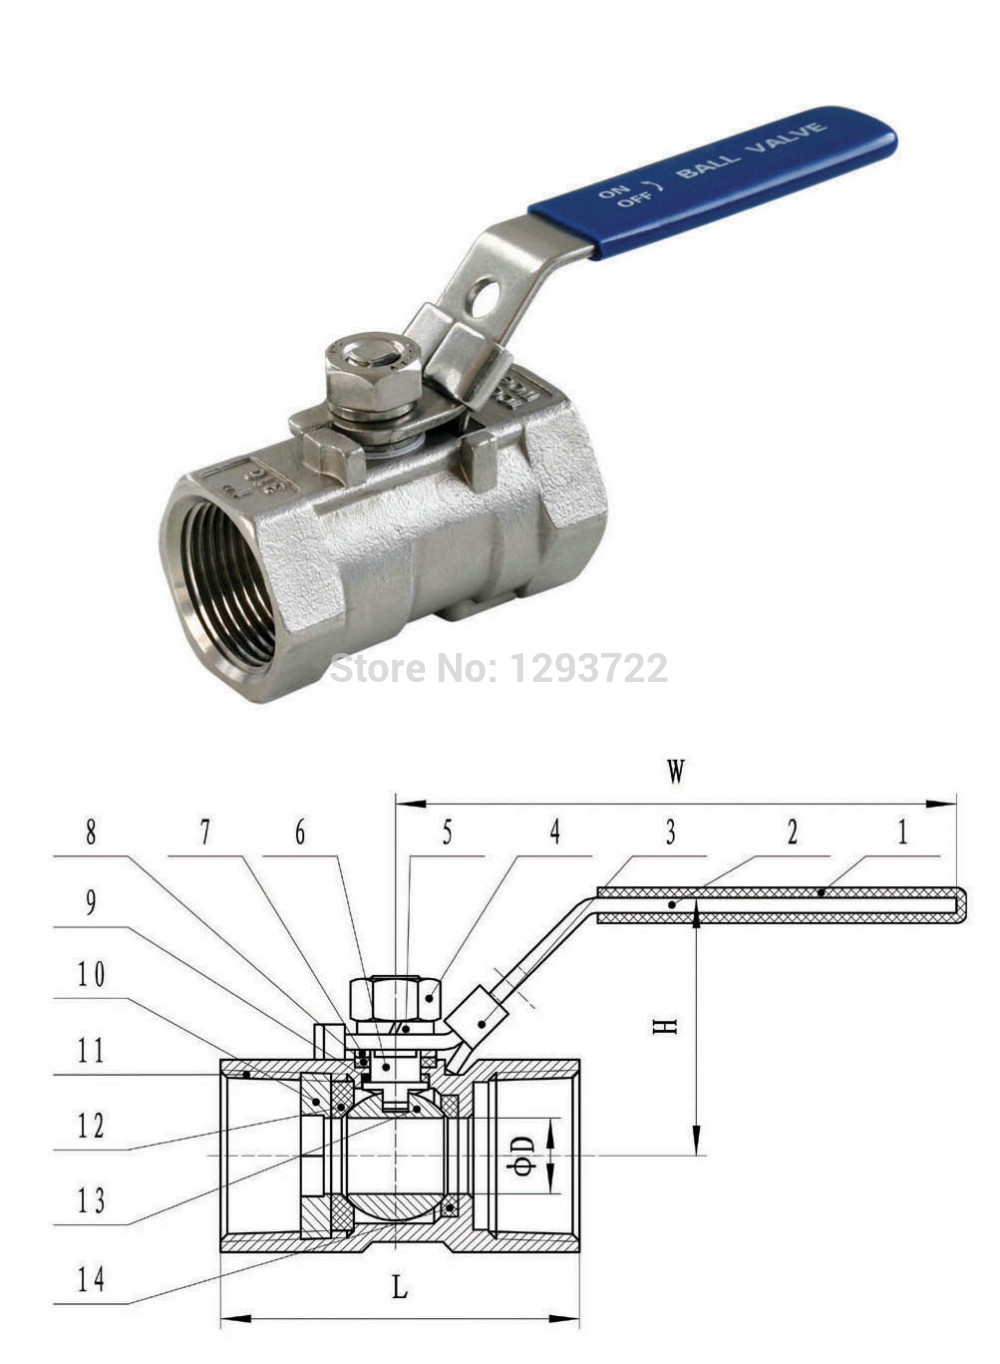 1 1/4 DN32 Stainless Steel 1- Piece Ball Valve, SS304 ,Economical Water Valve ,stainless steel ball valve,ball valve DN20<br>